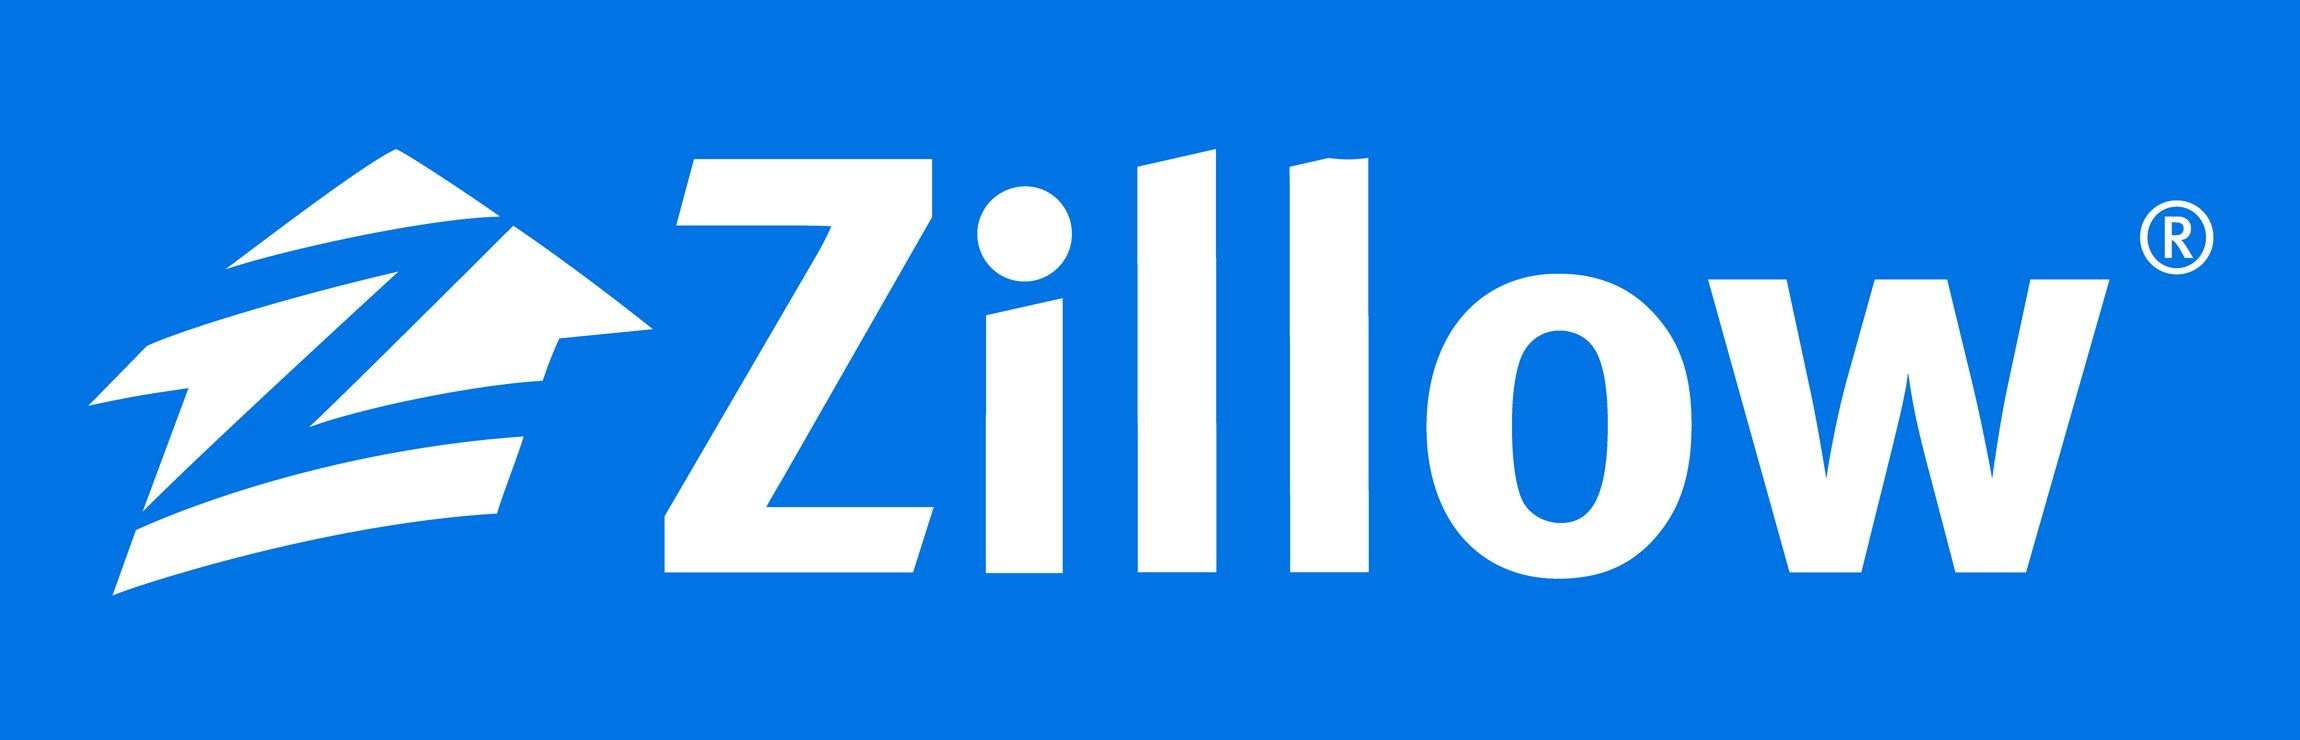 Color-Zillow-Logo.jpg